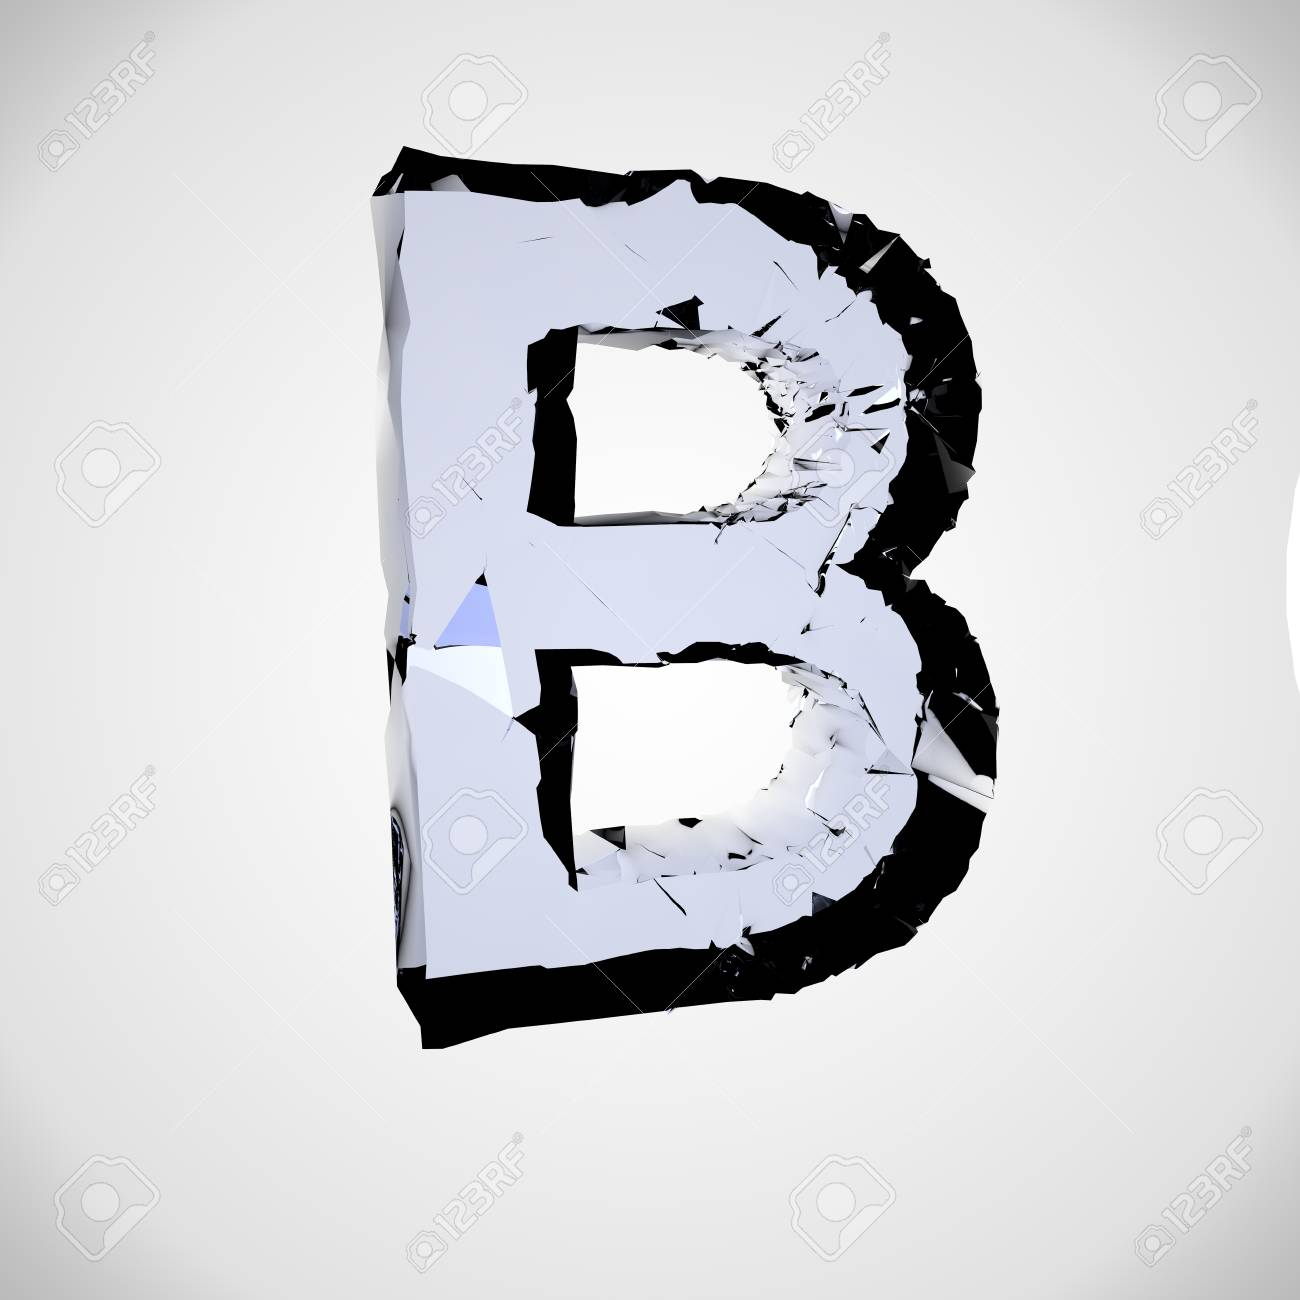 Single Character Big Letter B Isolated Stock Photo Picture And